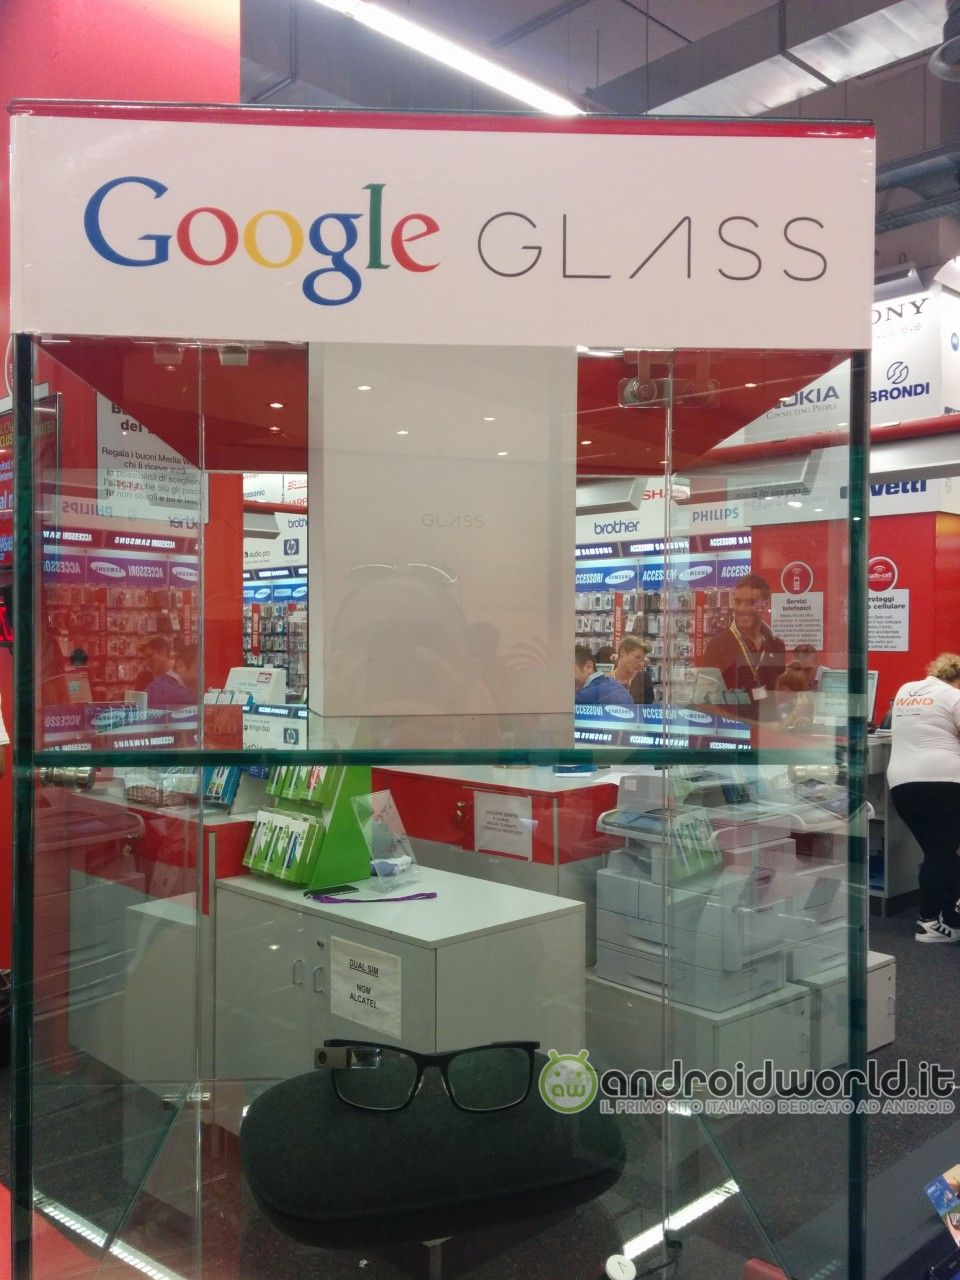 Google Glass Media Markt Italia